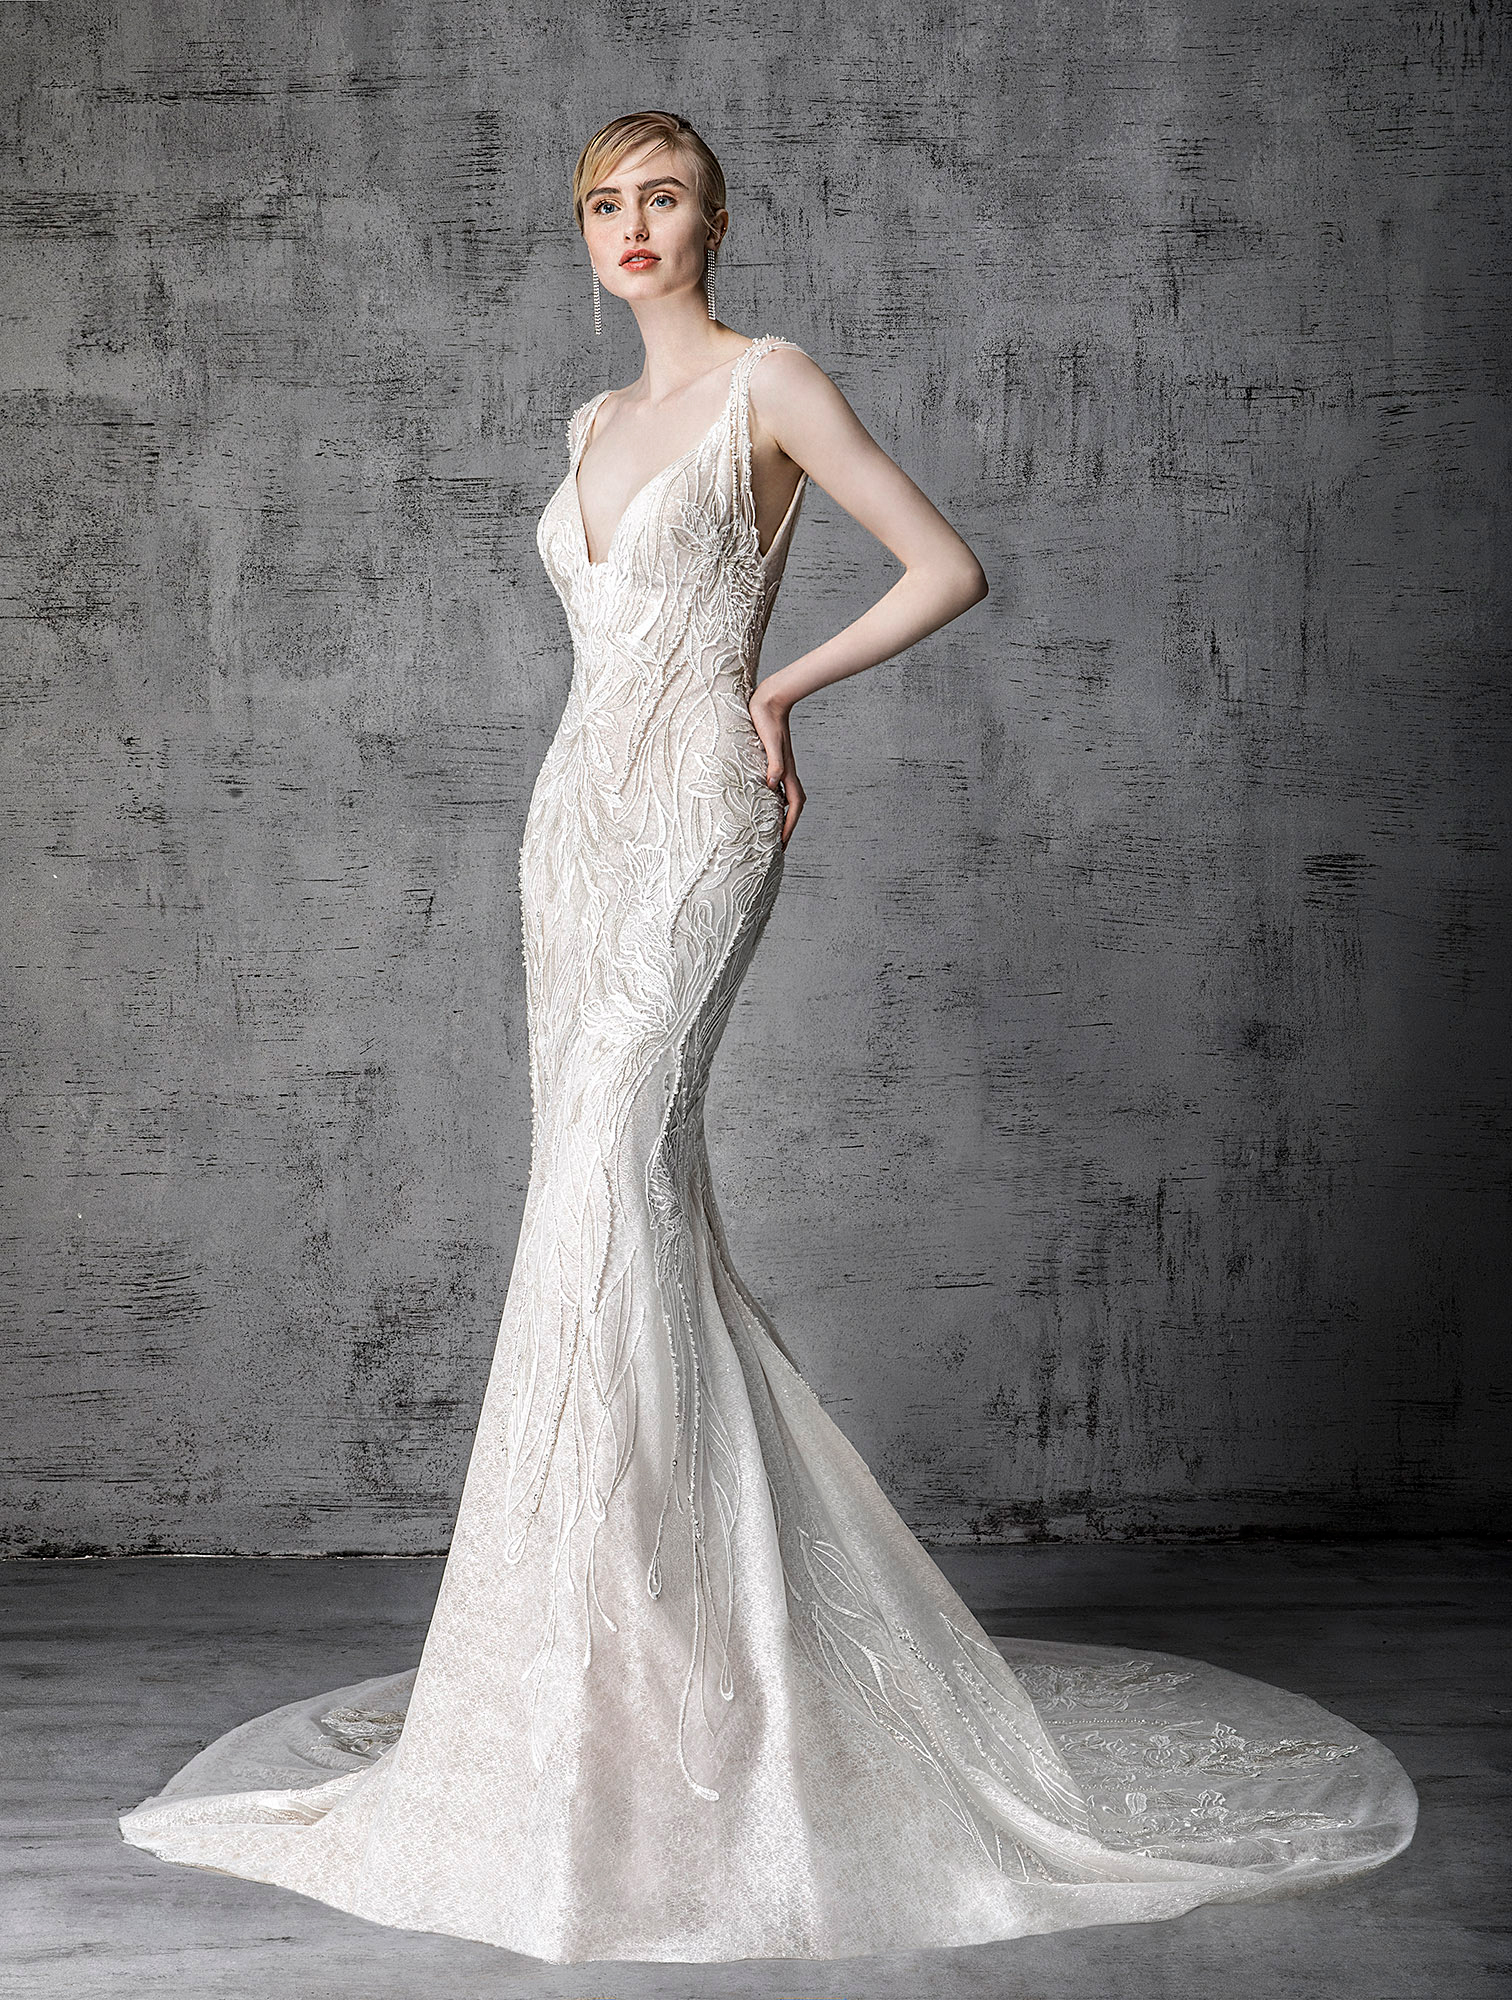 victoria kyriakides wedding dress spring 2019 lace embroidered trumpet